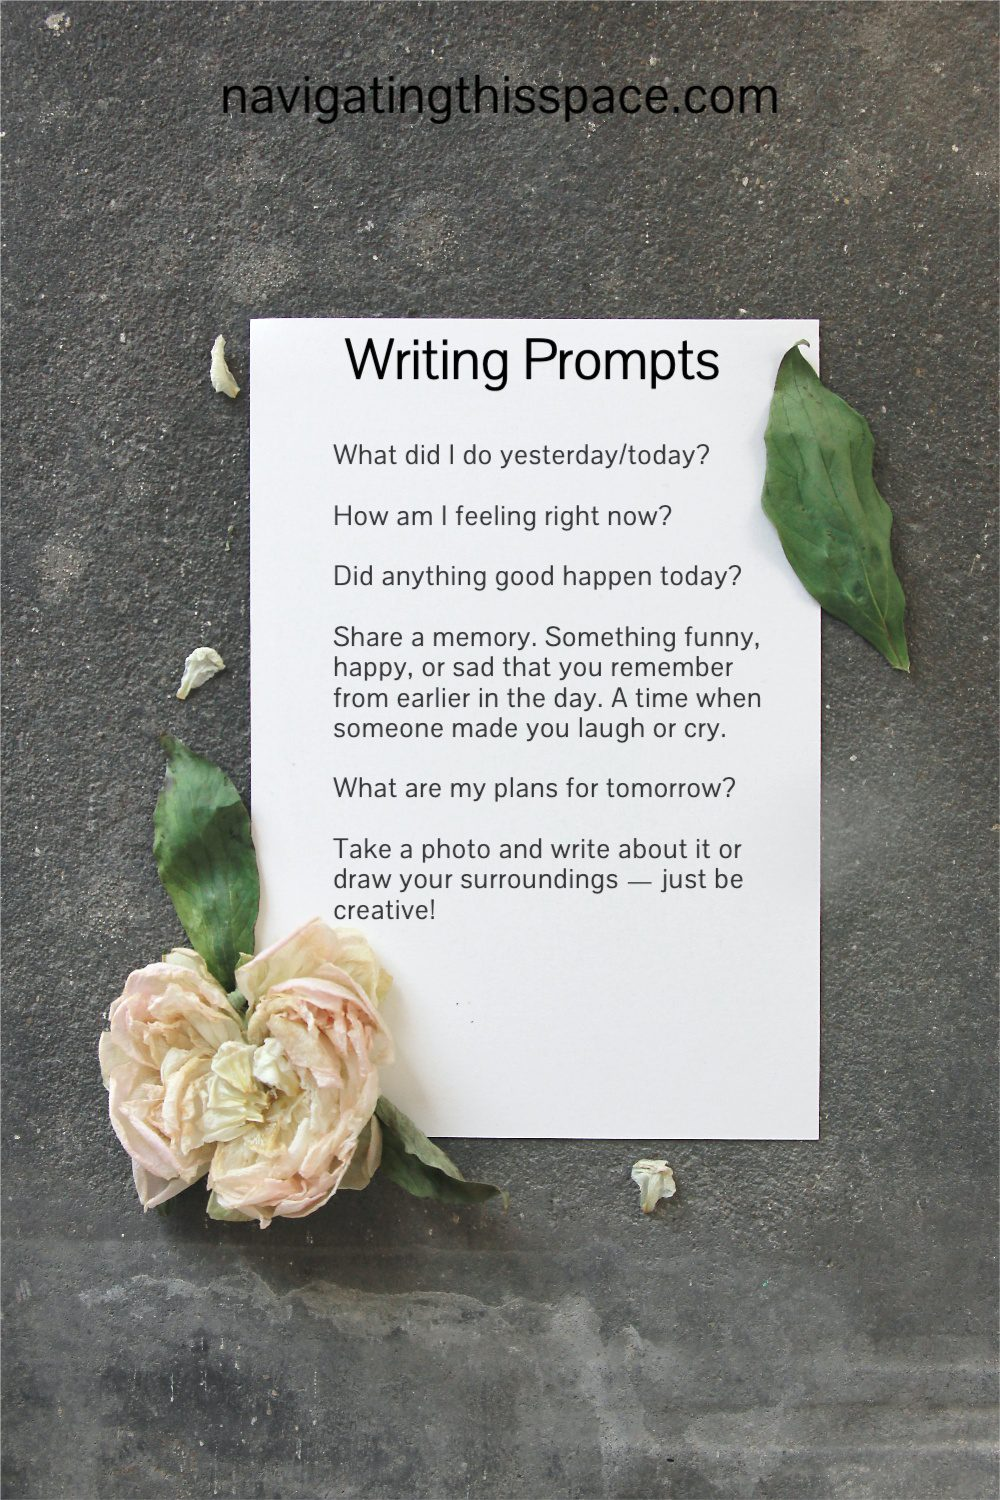 writing prompts are a way to journal daily